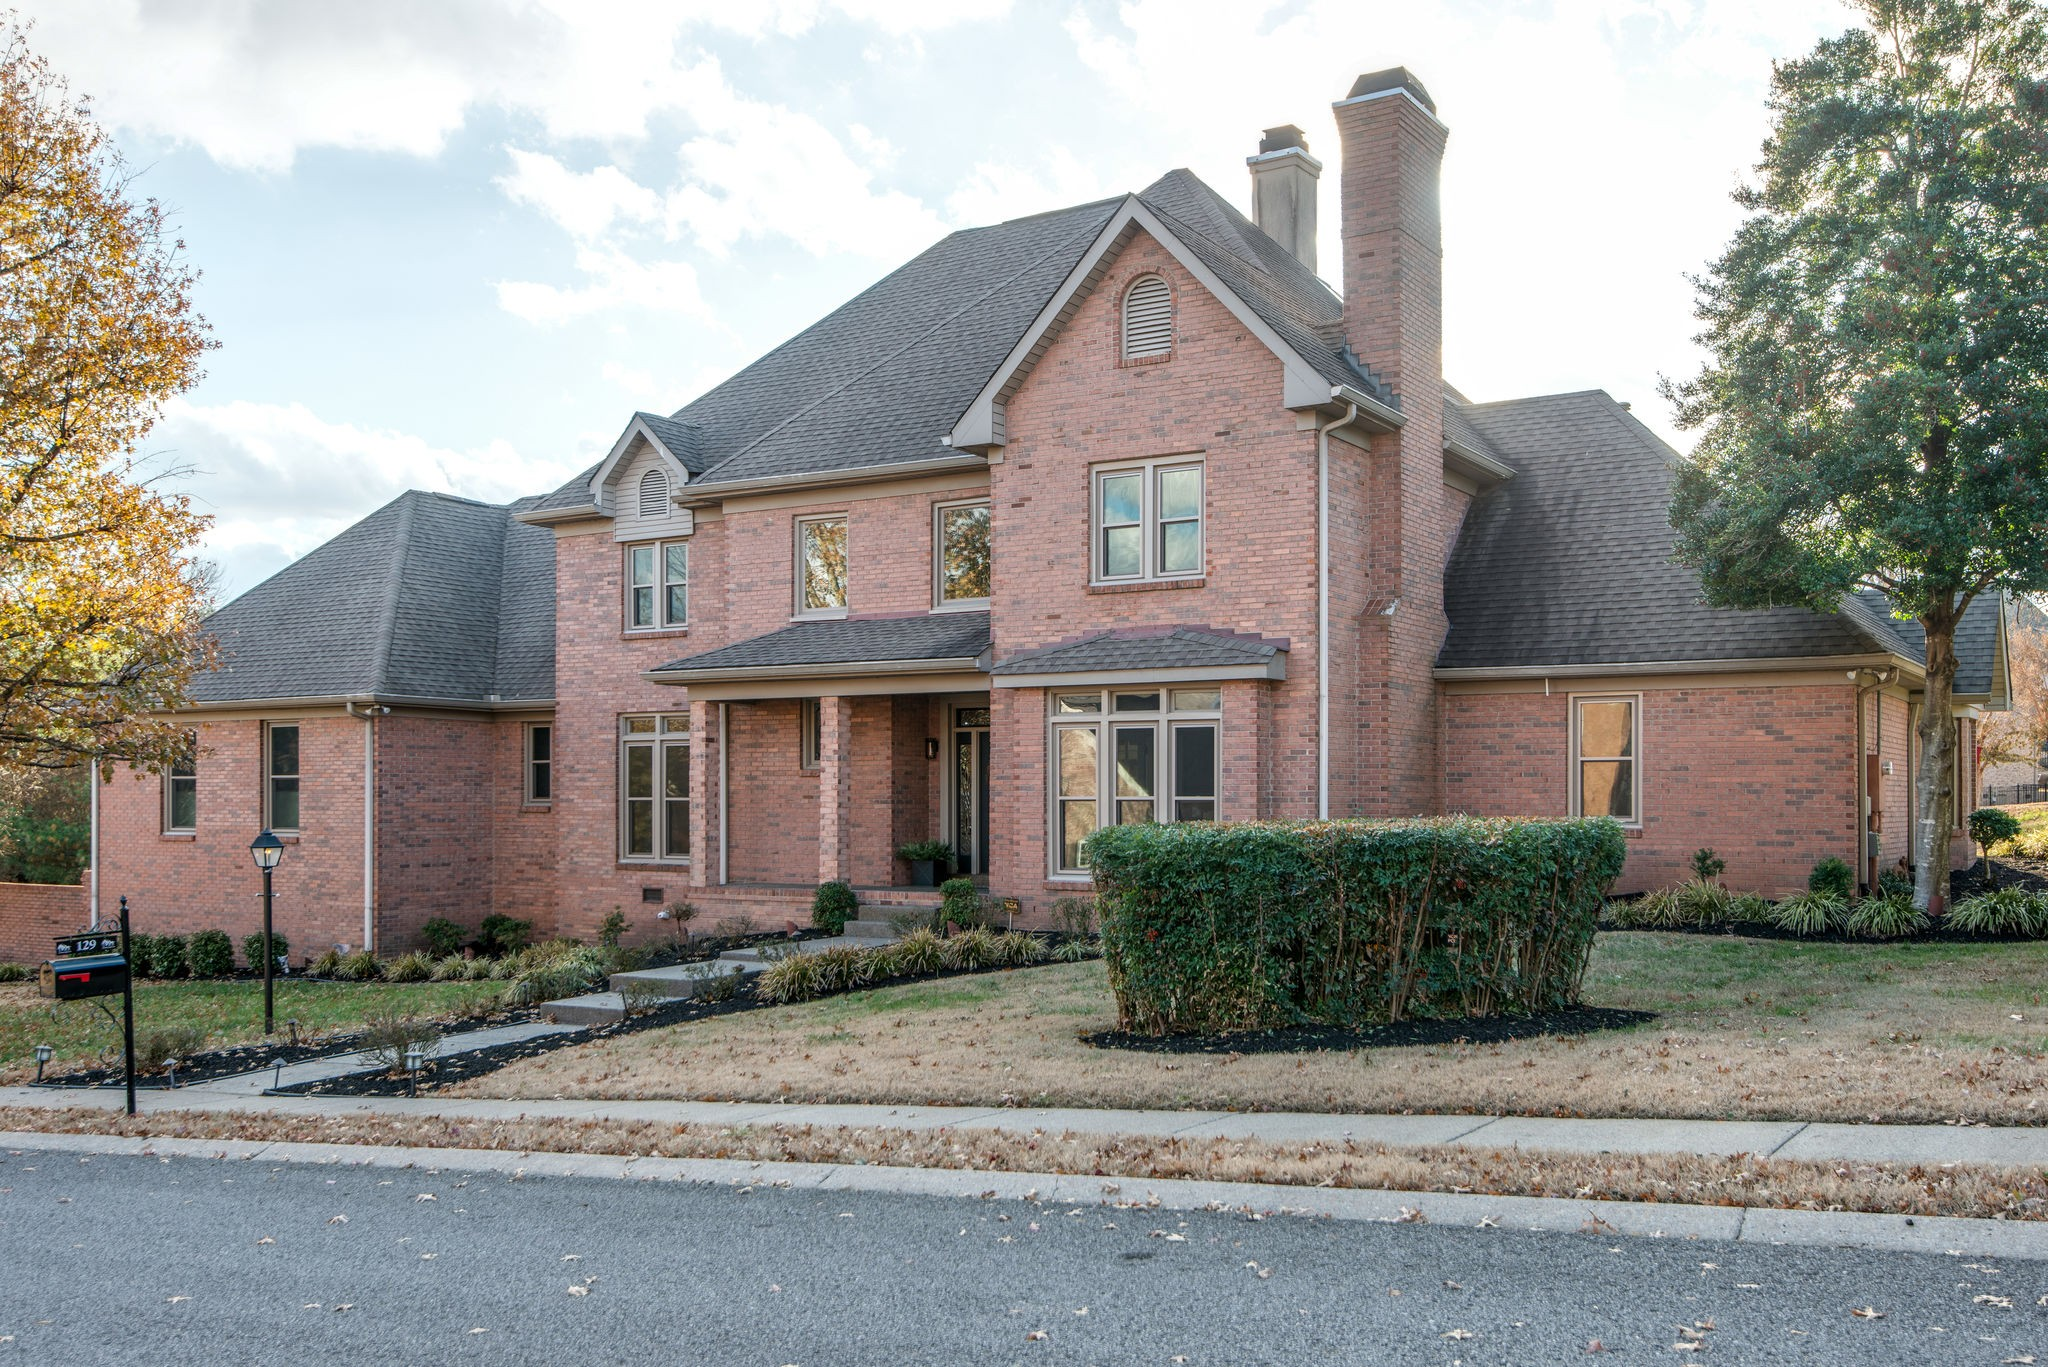 129 N Country Club Dr, Hendersonville, TN 37075 - Hendersonville, TN real estate listing